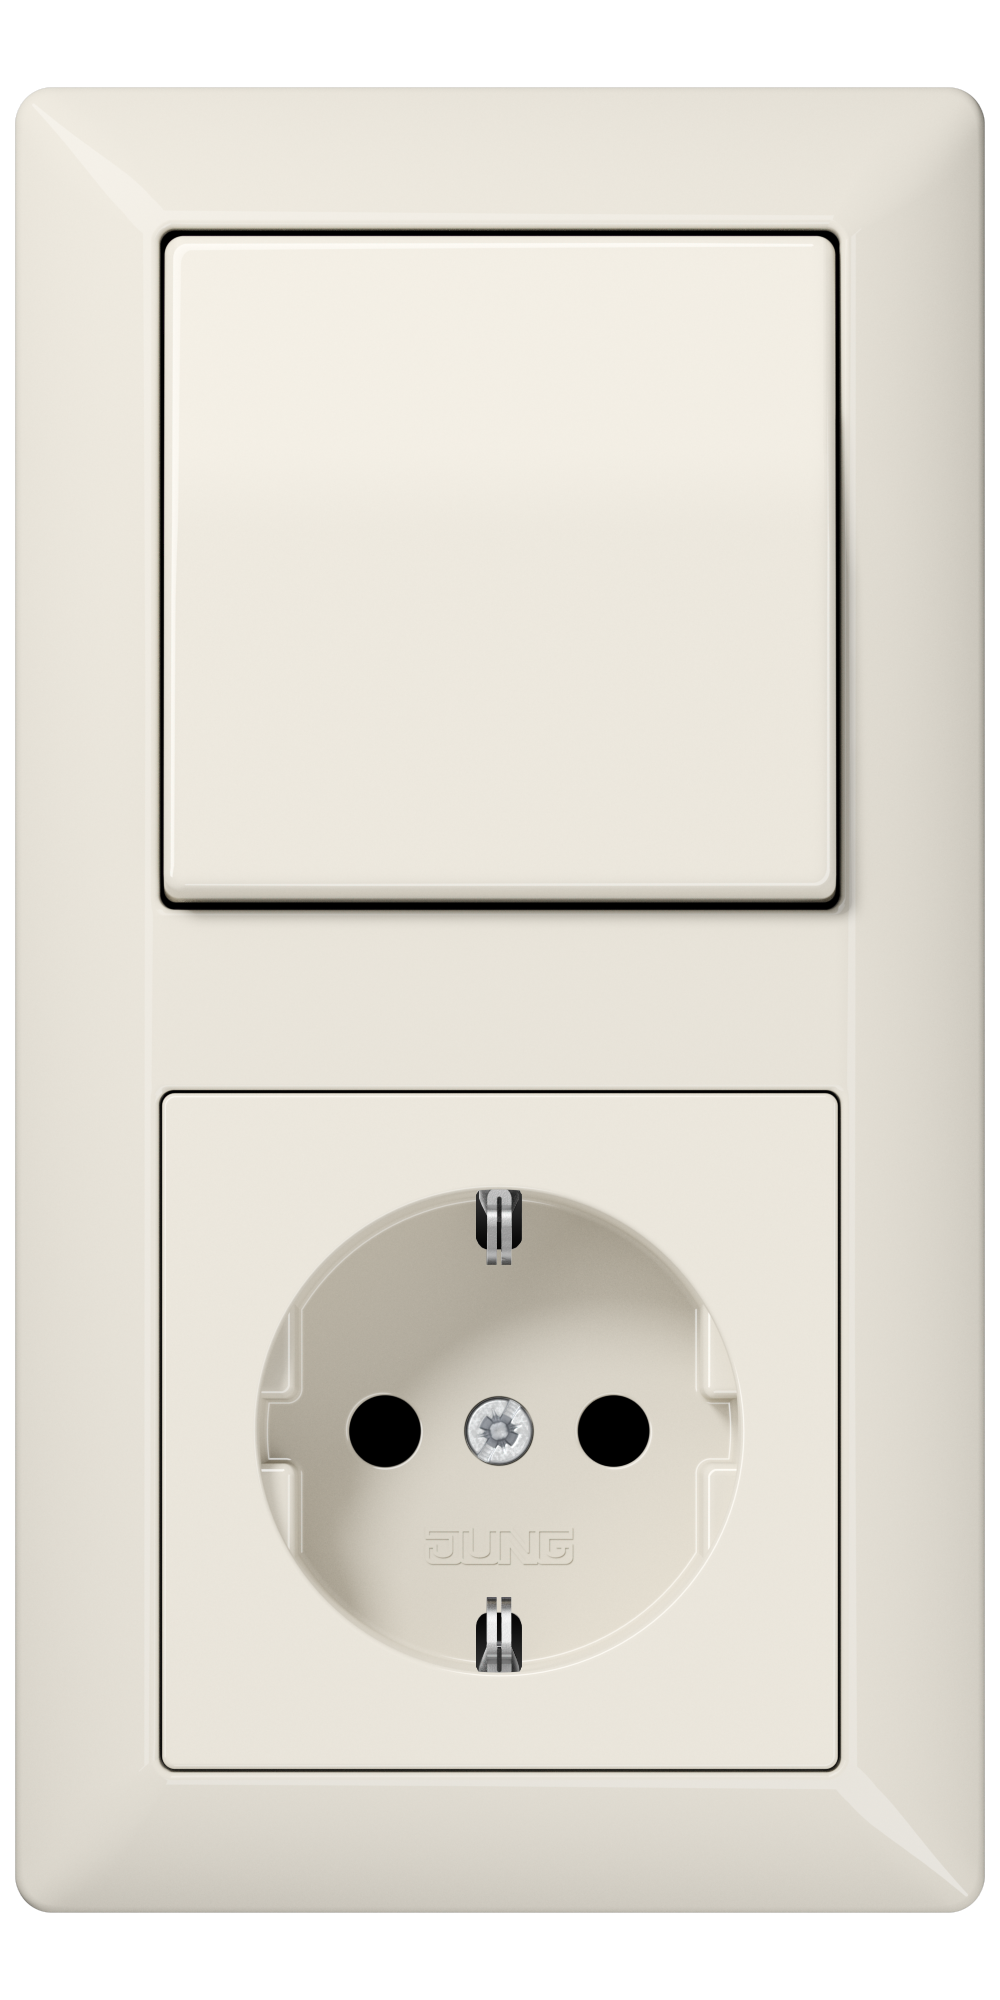 JUNG_AS500_breakproof_ivory_switch-socket